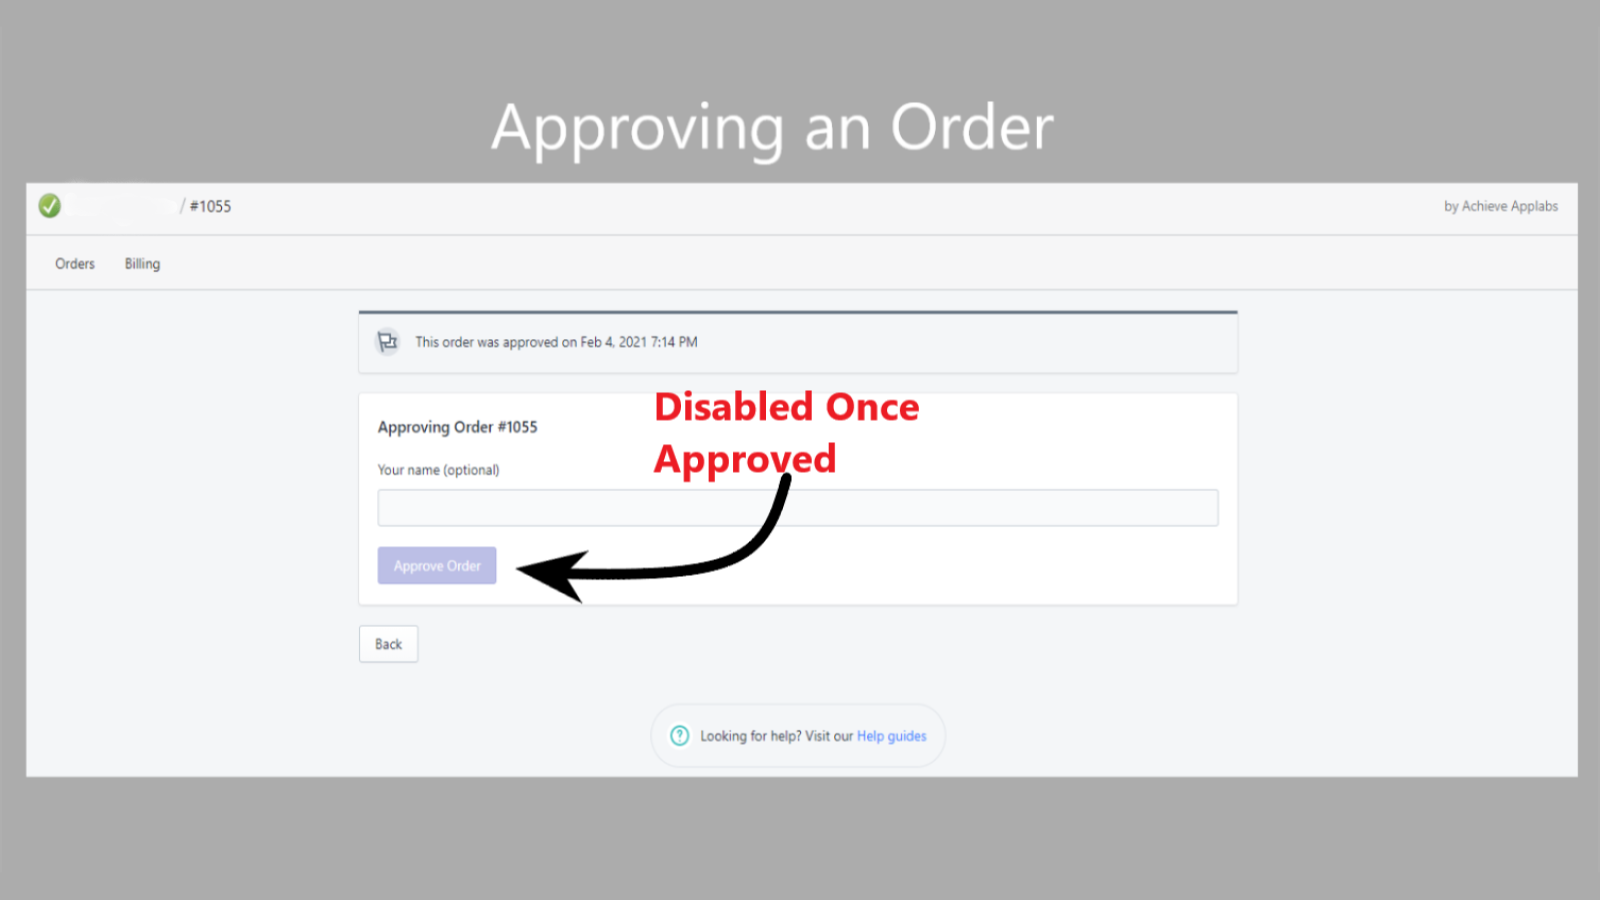 image of approving an order screen